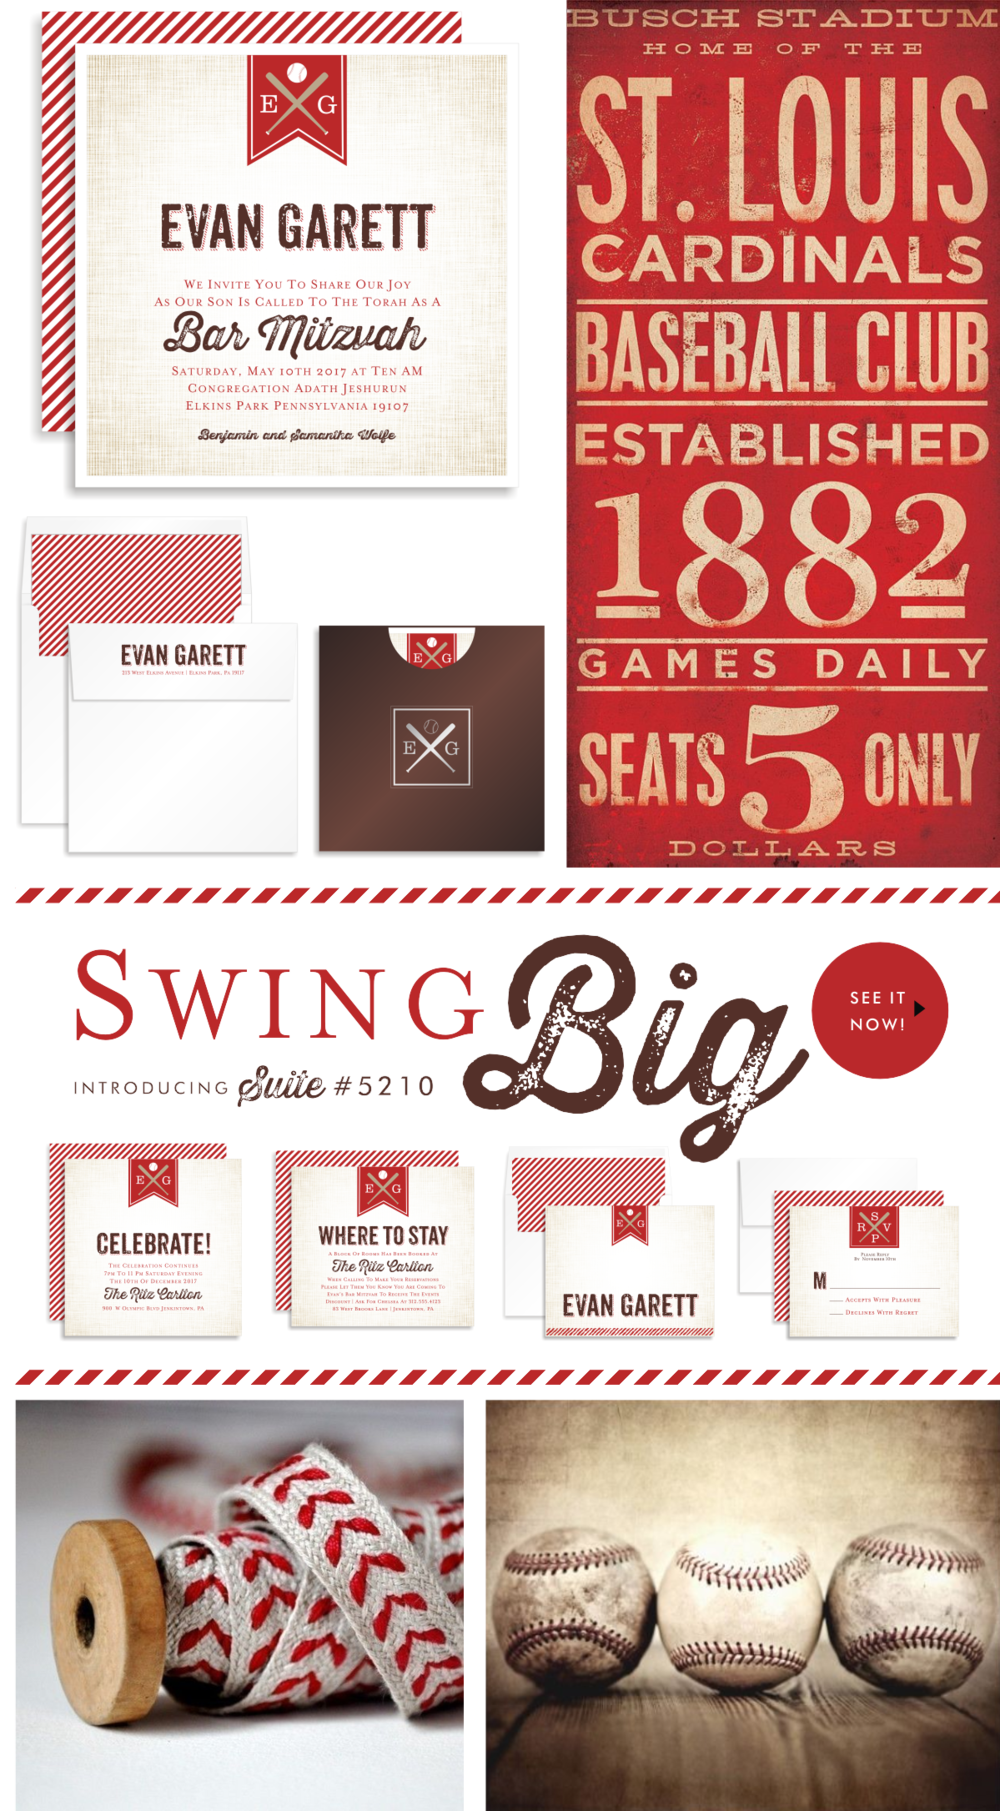 2014 0424 swing big FINAL FINAL BLOG POST.png